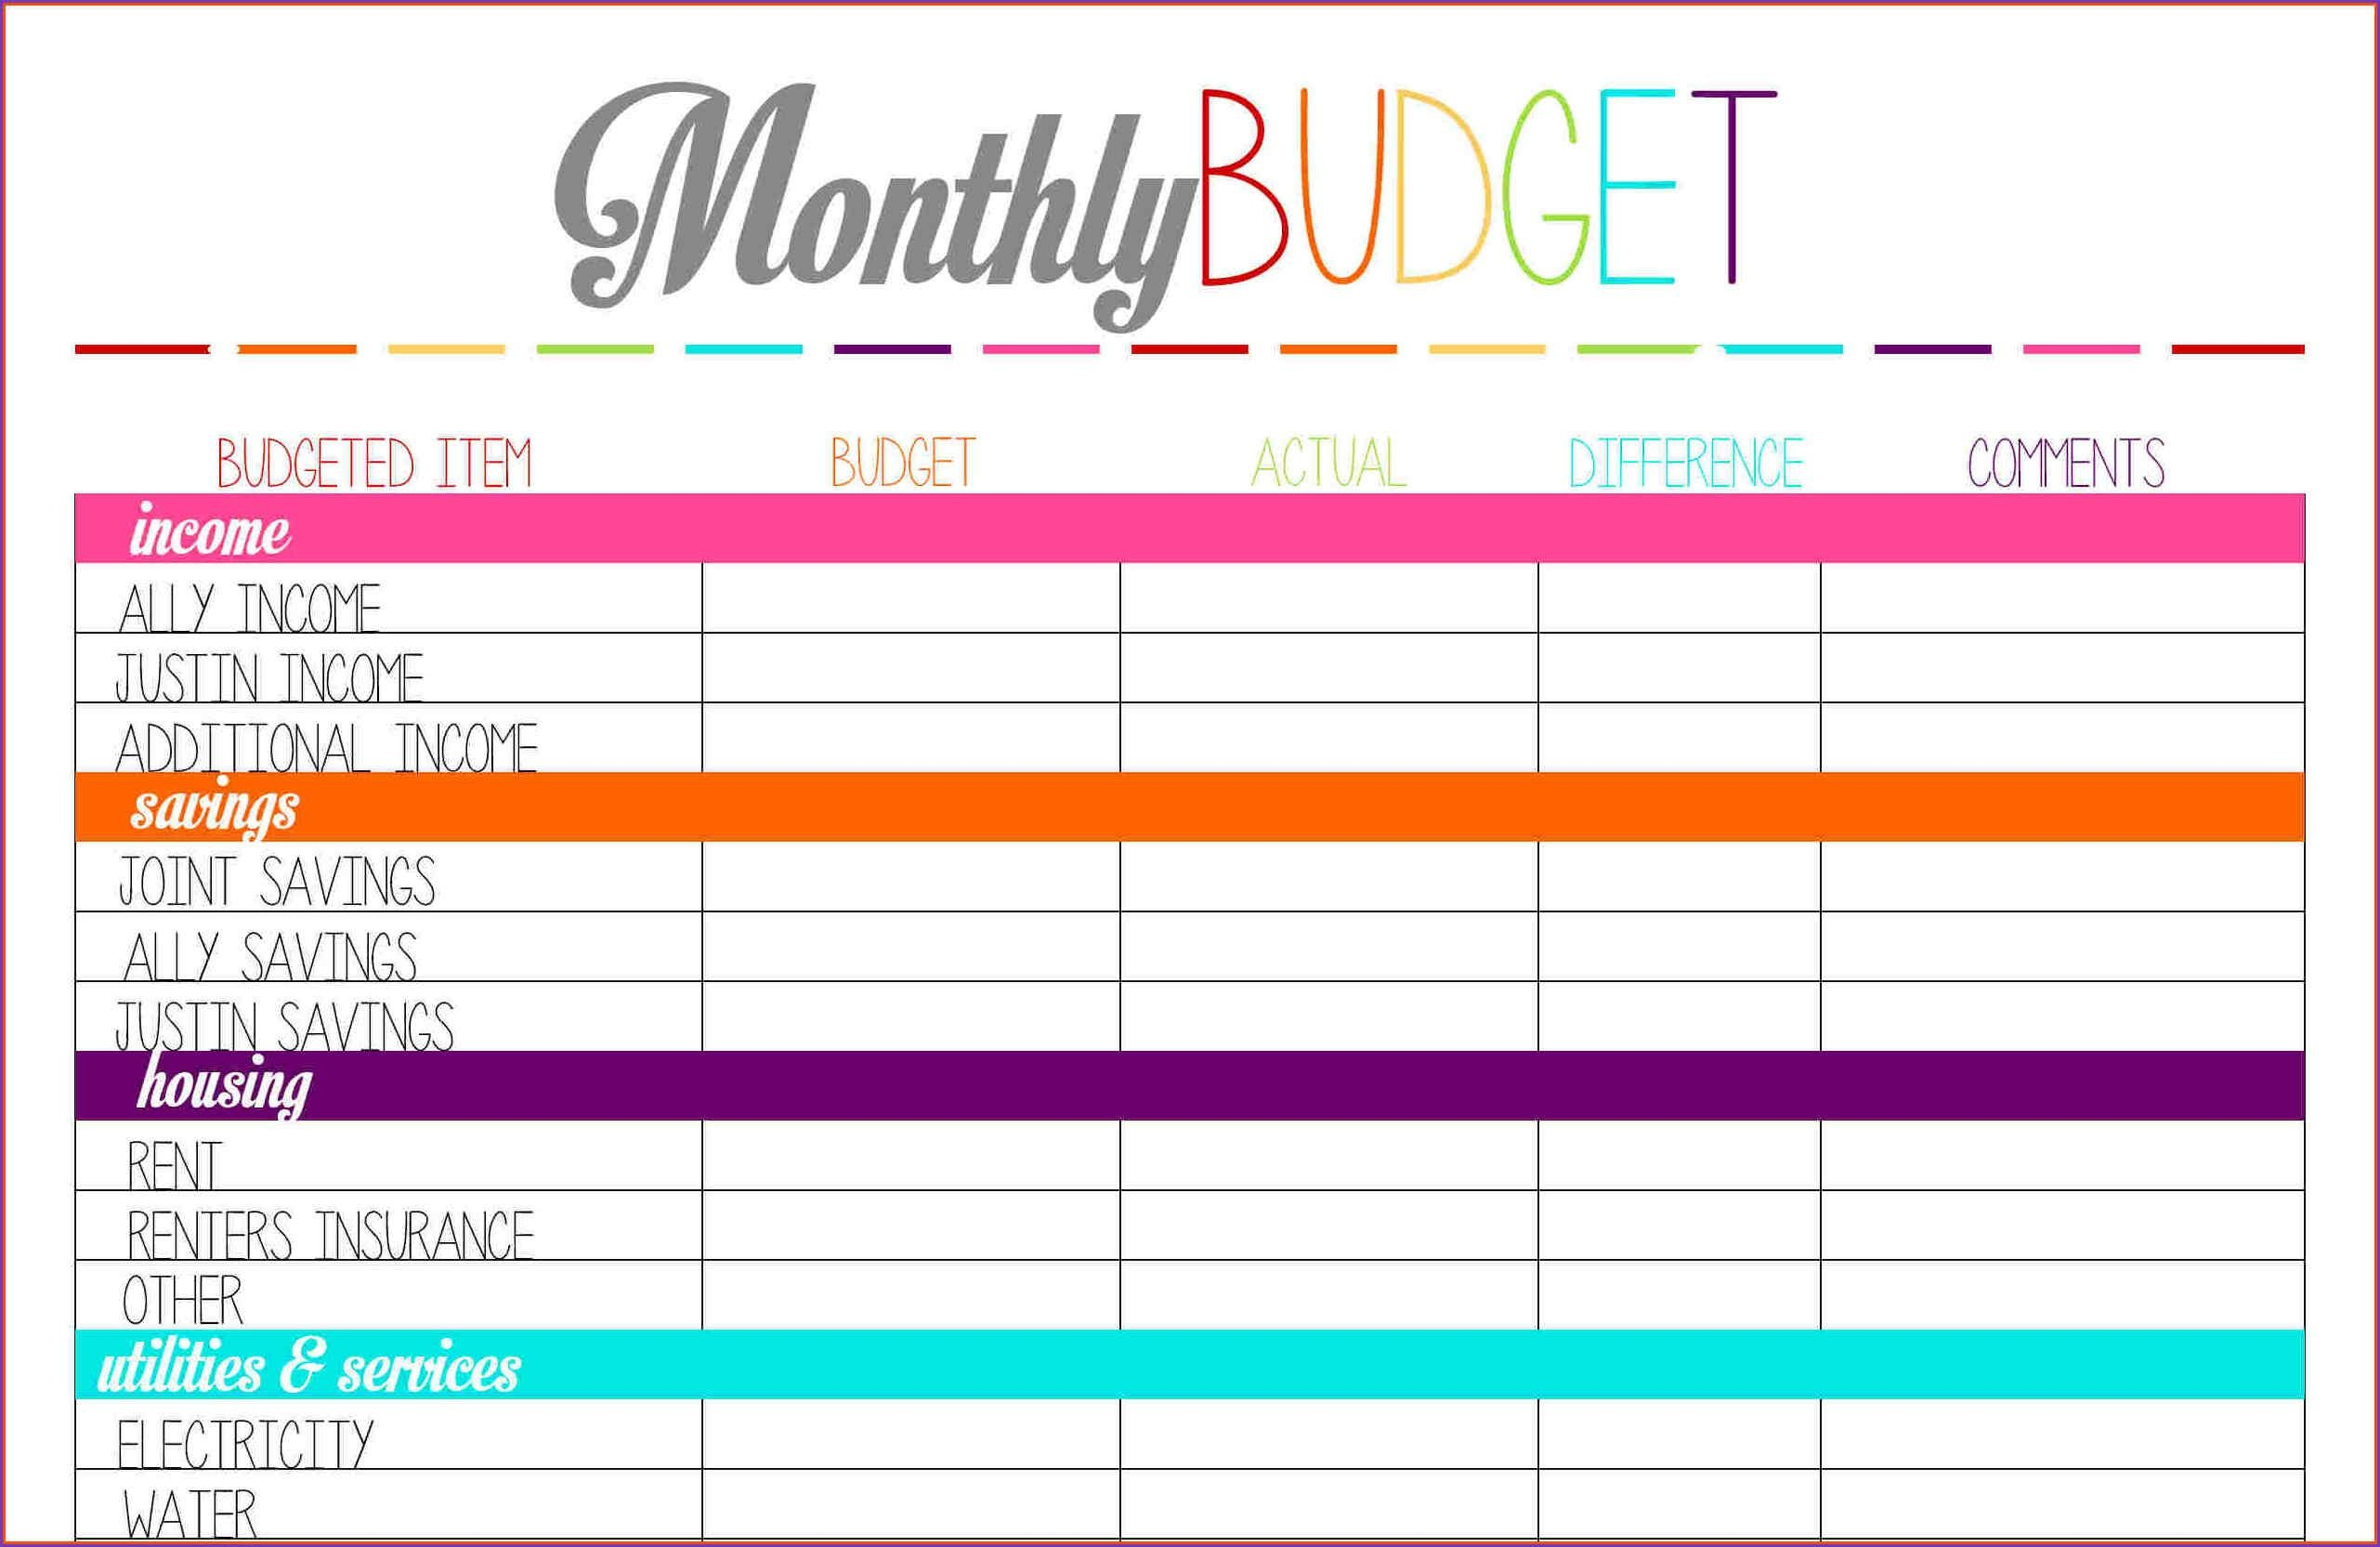 005 Free Monthly Budget Template 20Family Oninstall Budgeting ... Along With Free Monthly Budget Spreadsheet Template